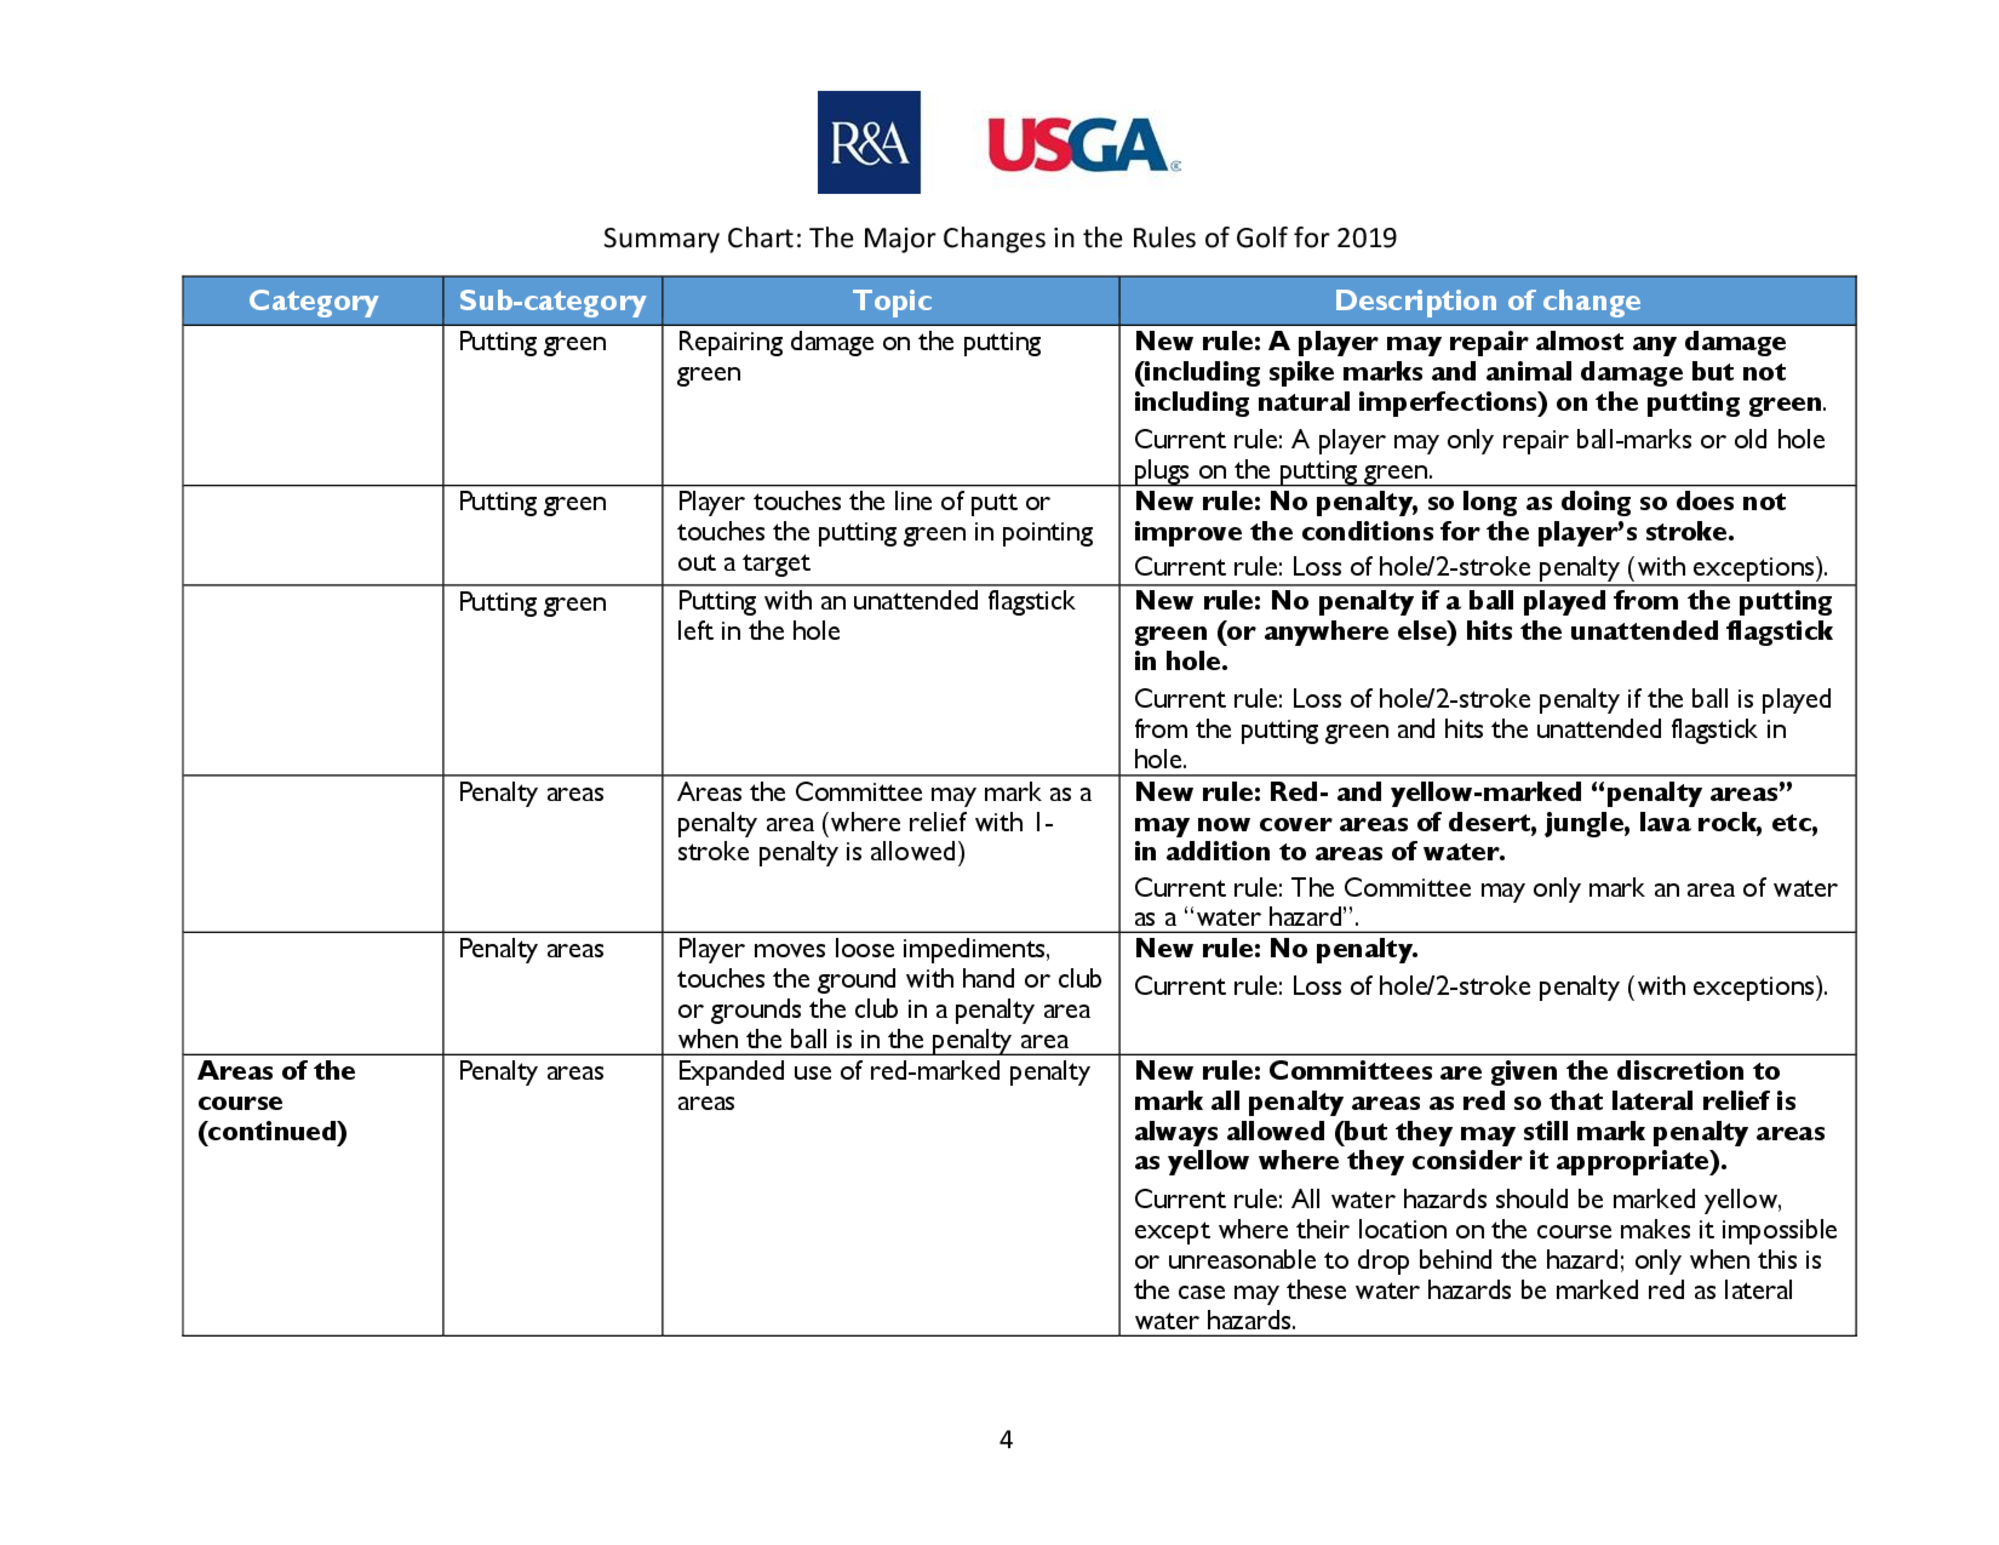 Summary of main changes 2019 rules of golf final  2  4